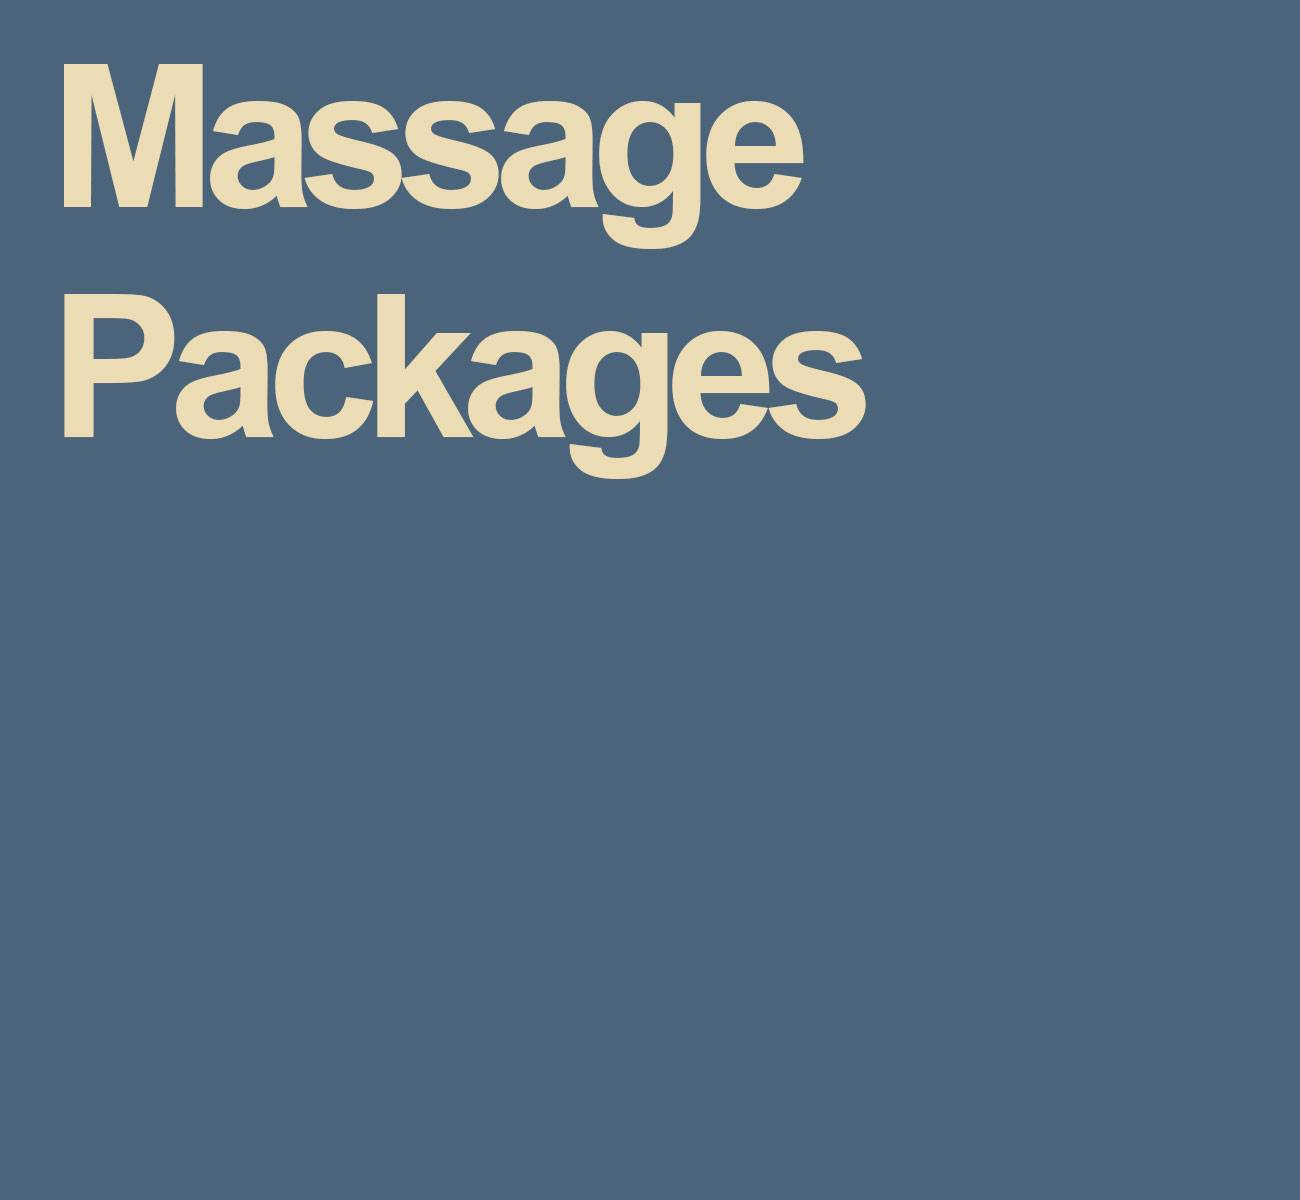 Save with Our Massage Packages